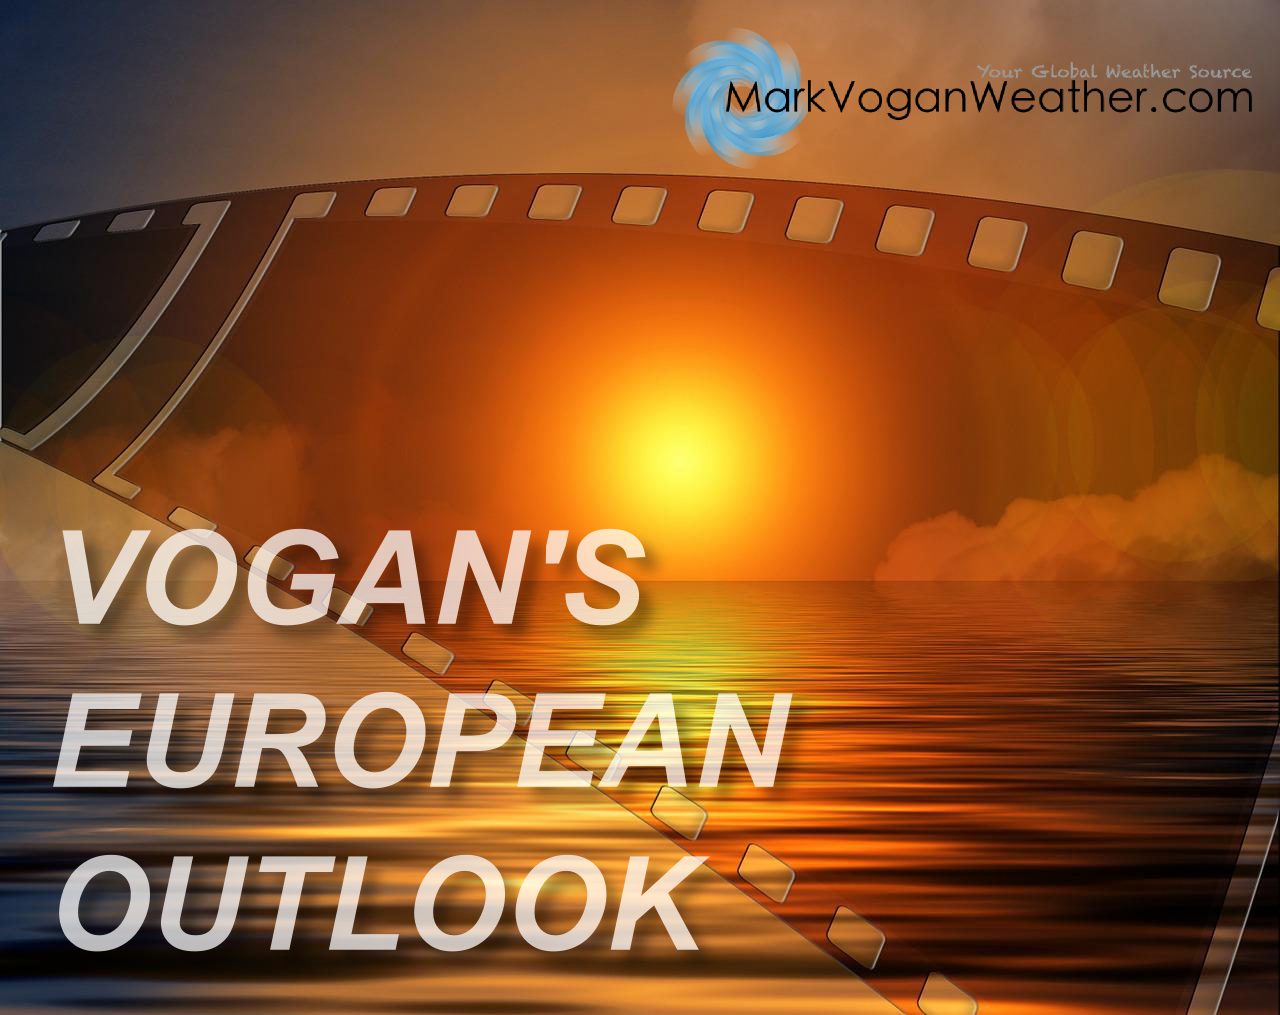 SAT 31 MAY: VOGAN'S EUROPEAN OUTLOOK